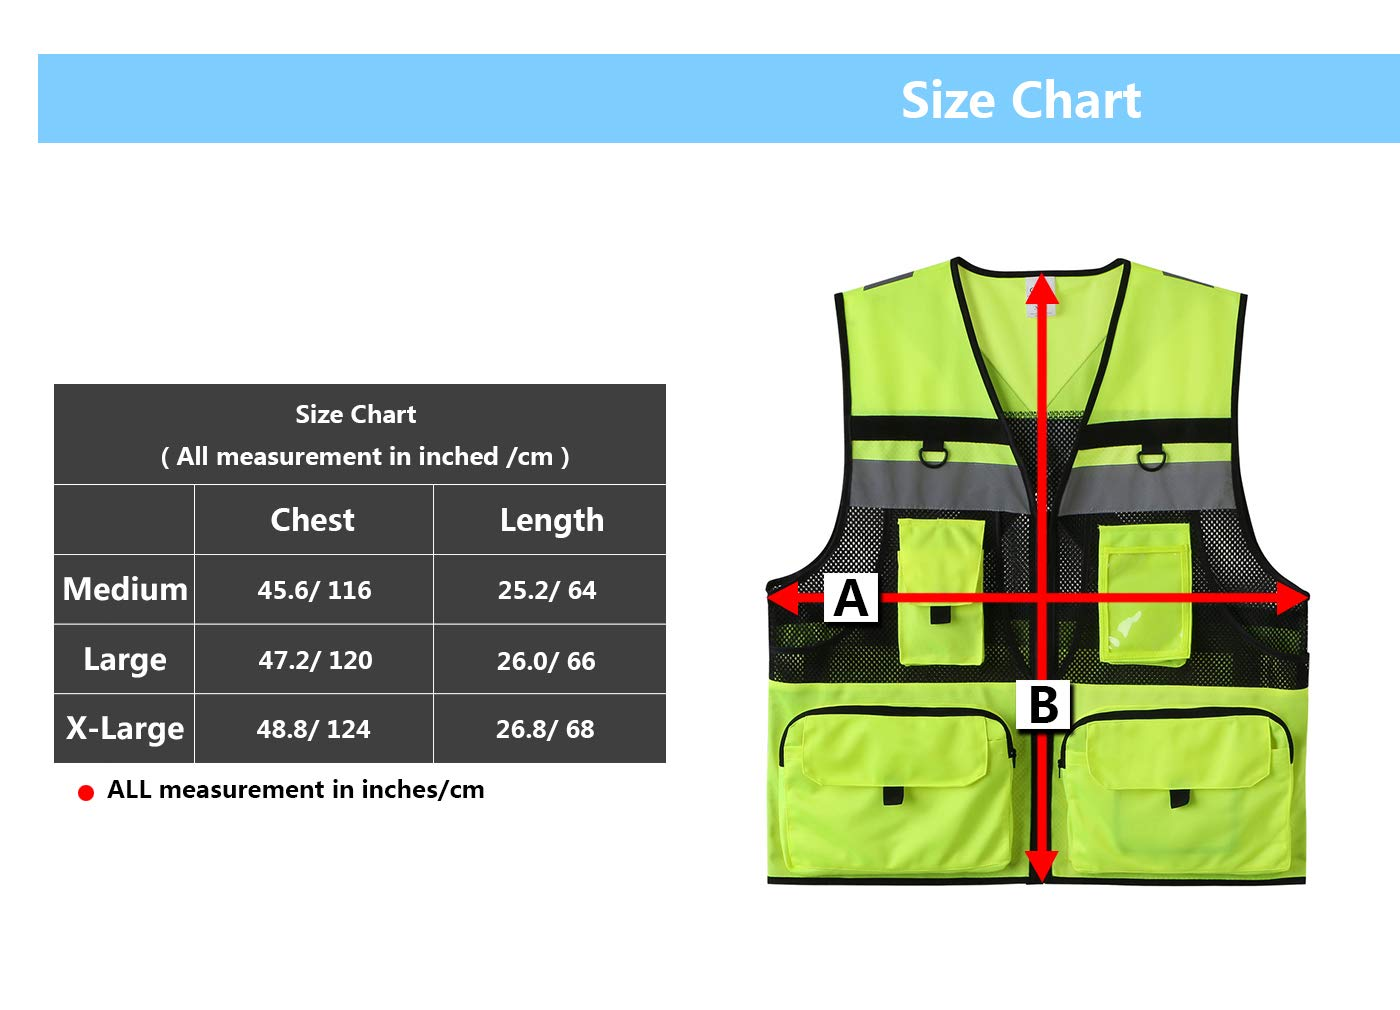 Hogear 11 Pockets Class 2 High Visible Reflective Safety Vest Breathable and Mesh Lining Workwear (M-2XL, Yellow Black) (Small, Yellow+Black)